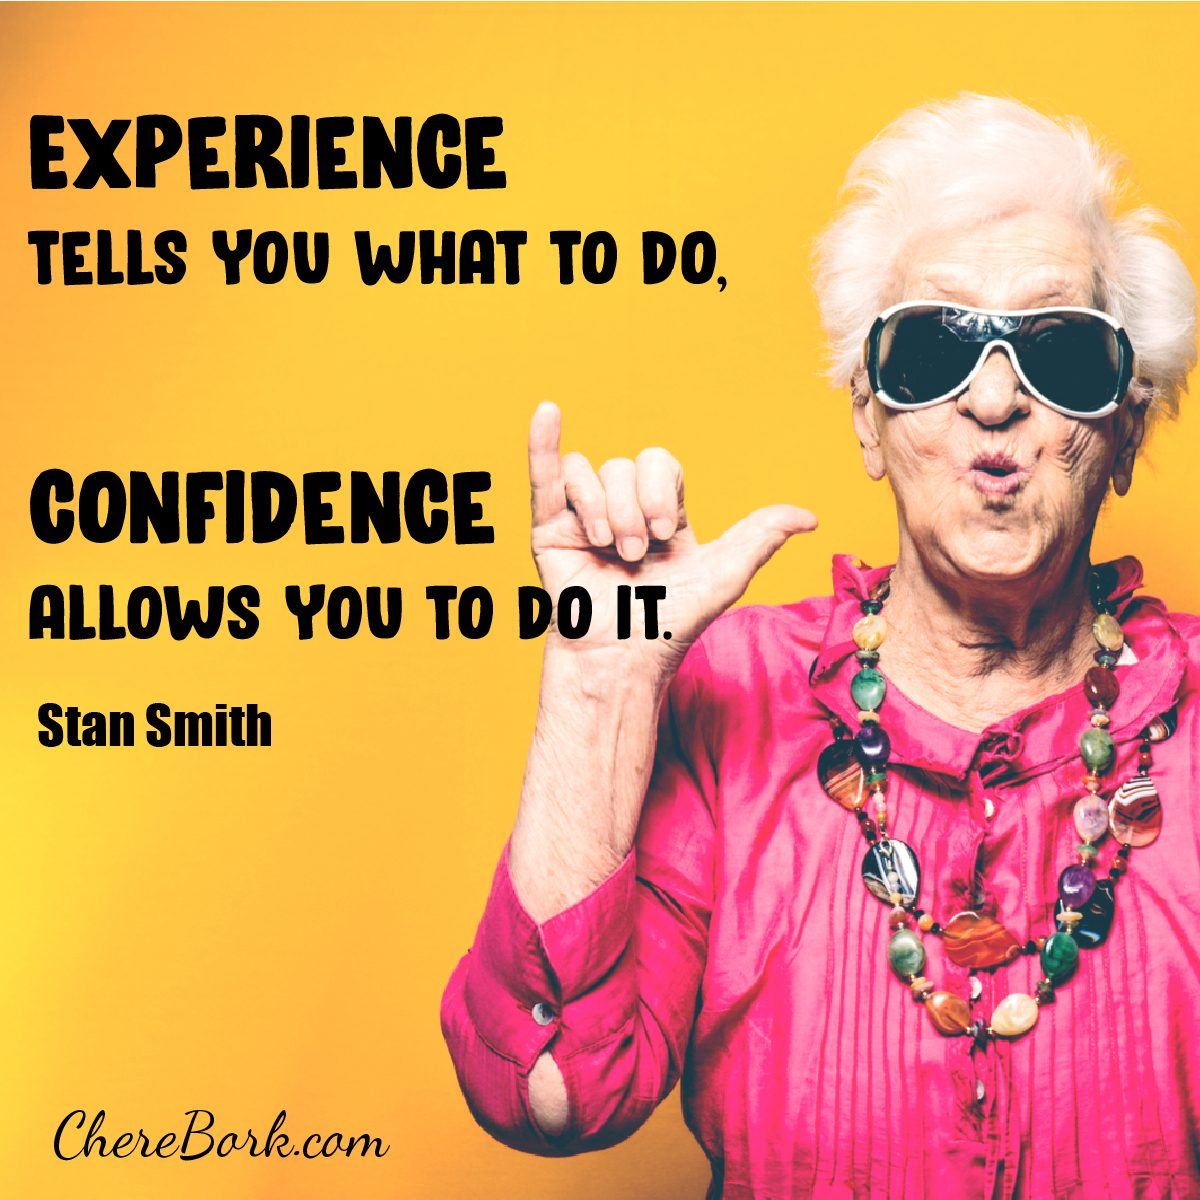 Experience tells you what to do. Confidence allows you to do it. -Stan Smith